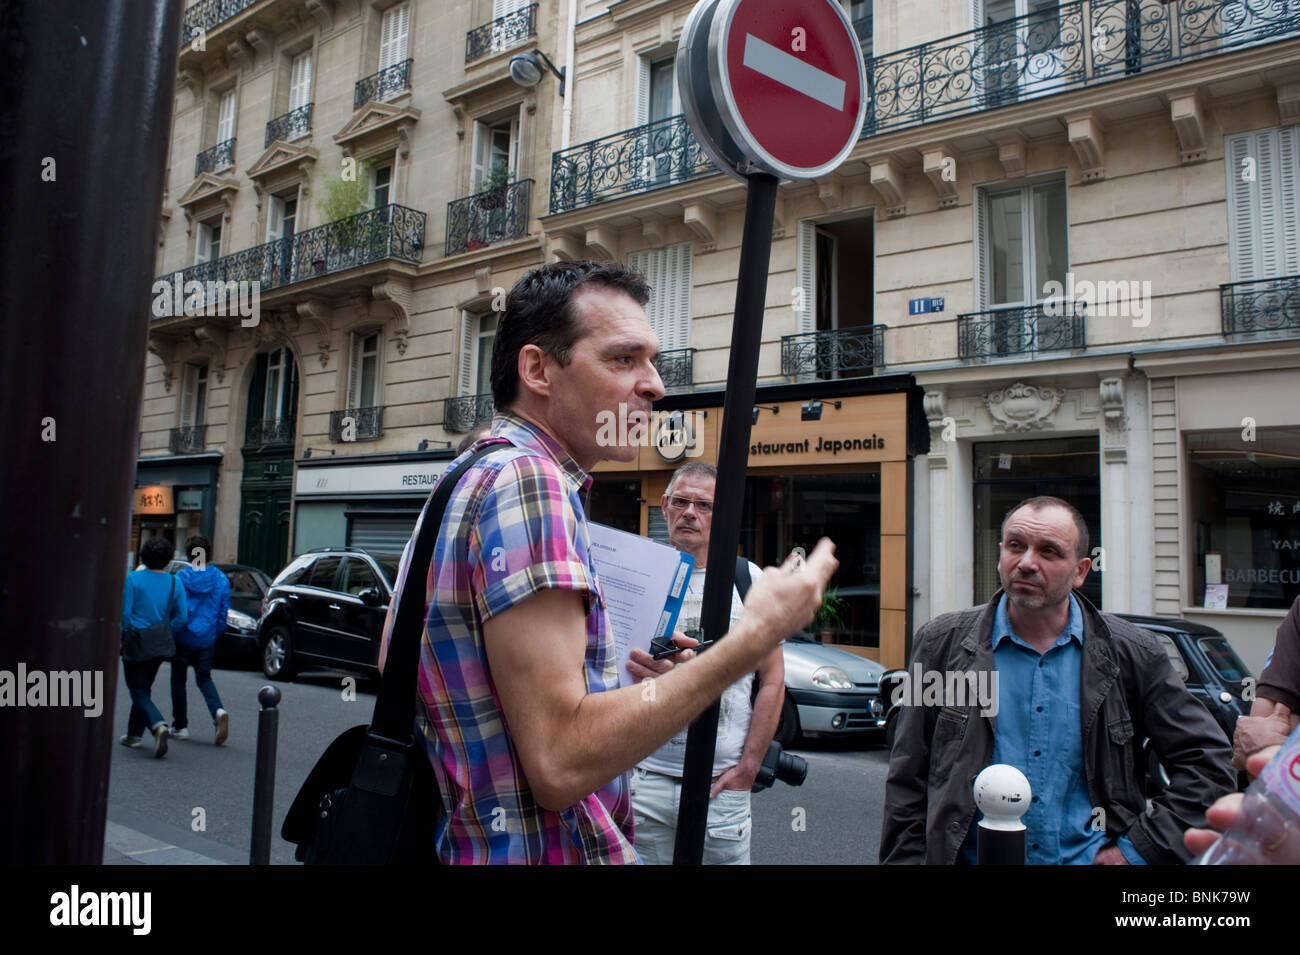 Adult Tourists Taking Gay History Tour of 1980's Paris by Tour Guide, 'Hervé Taulière'. adult - Stock Image